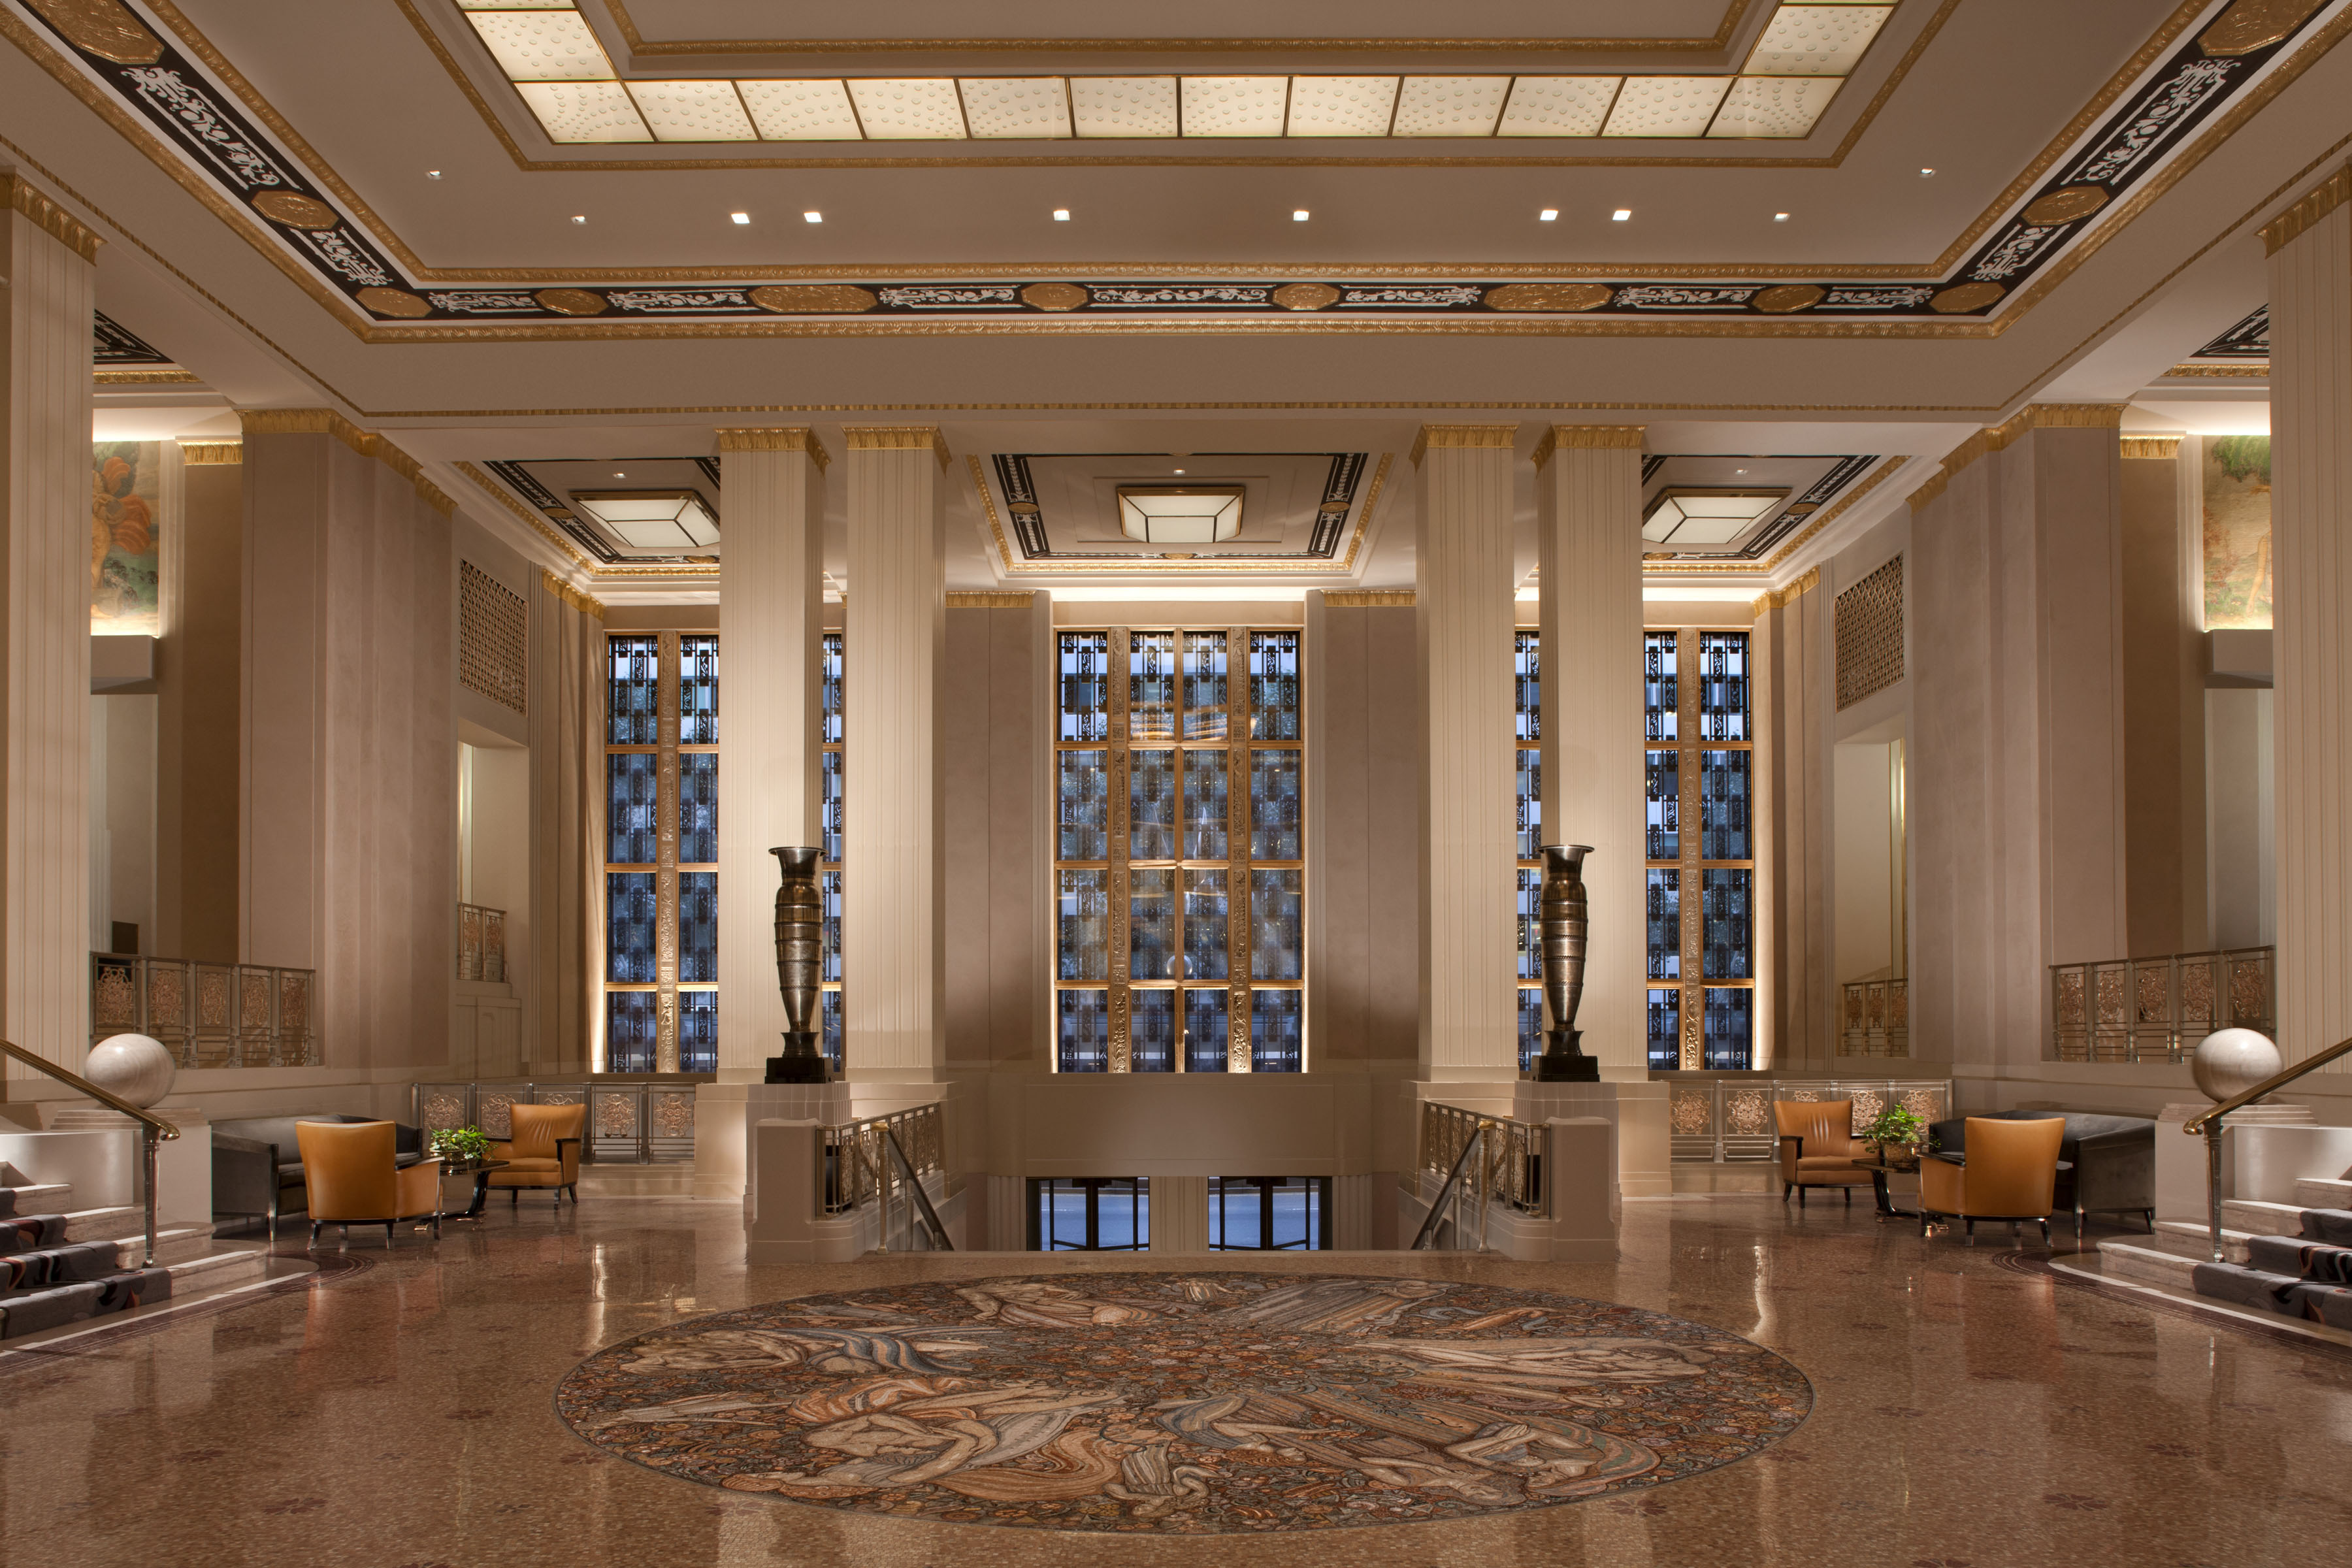 The lobby of the Waldorf-Astoria